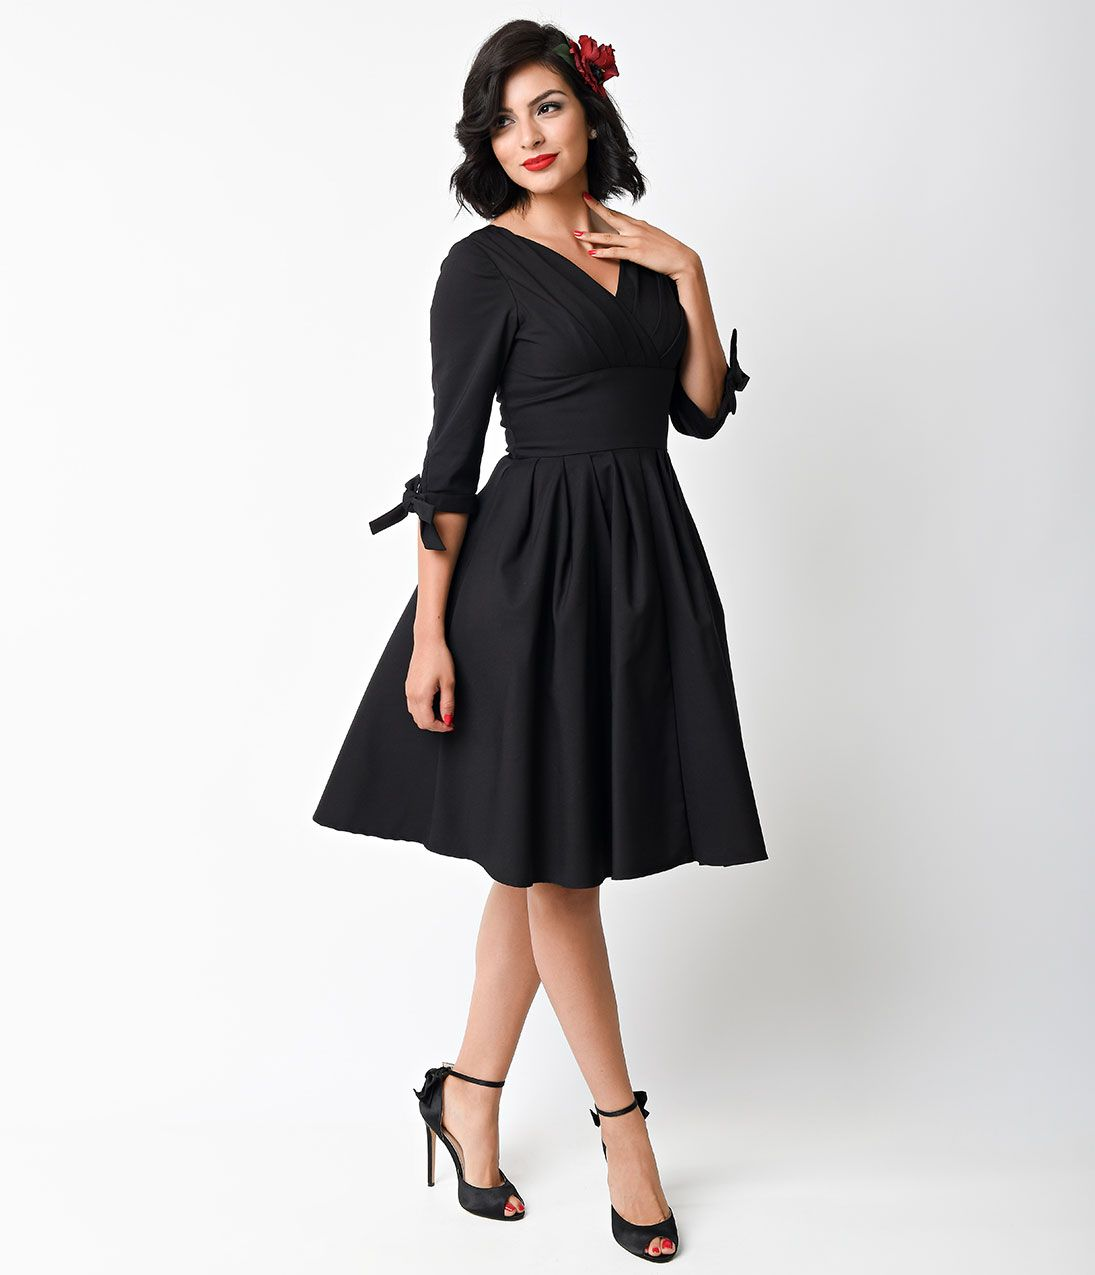 Black dress quarter sleeve - 1950s Rockabilly Dresses And Clothing